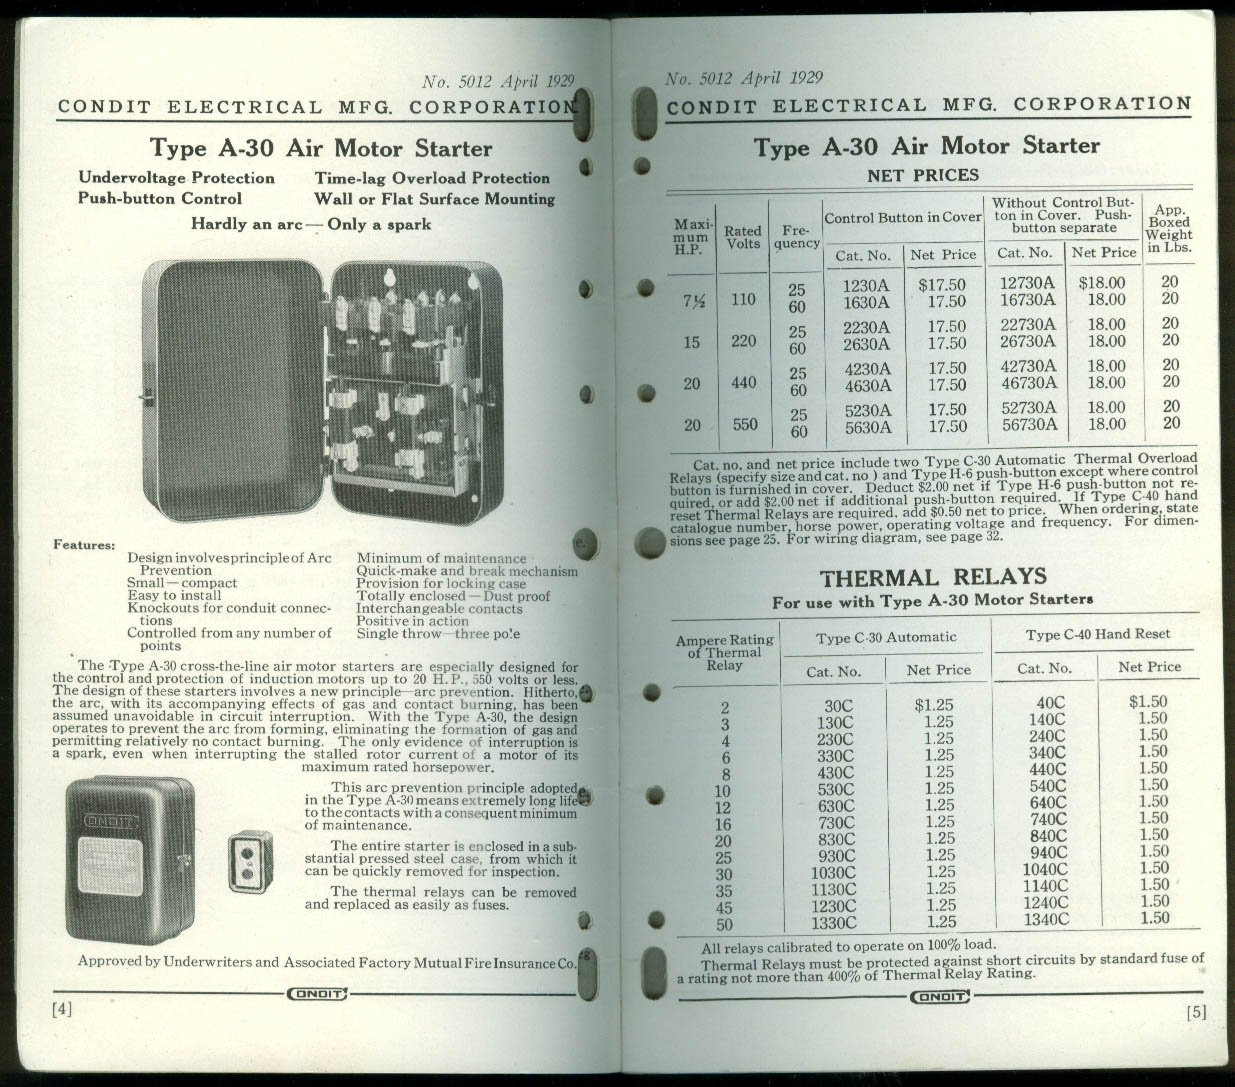 Condit Motor Starters Circuit Breakers Safety Industrial Handbook 4 Thermal Overload Relay Wiring Diagram 1929 At Amazons Entertainment Collectibles Store